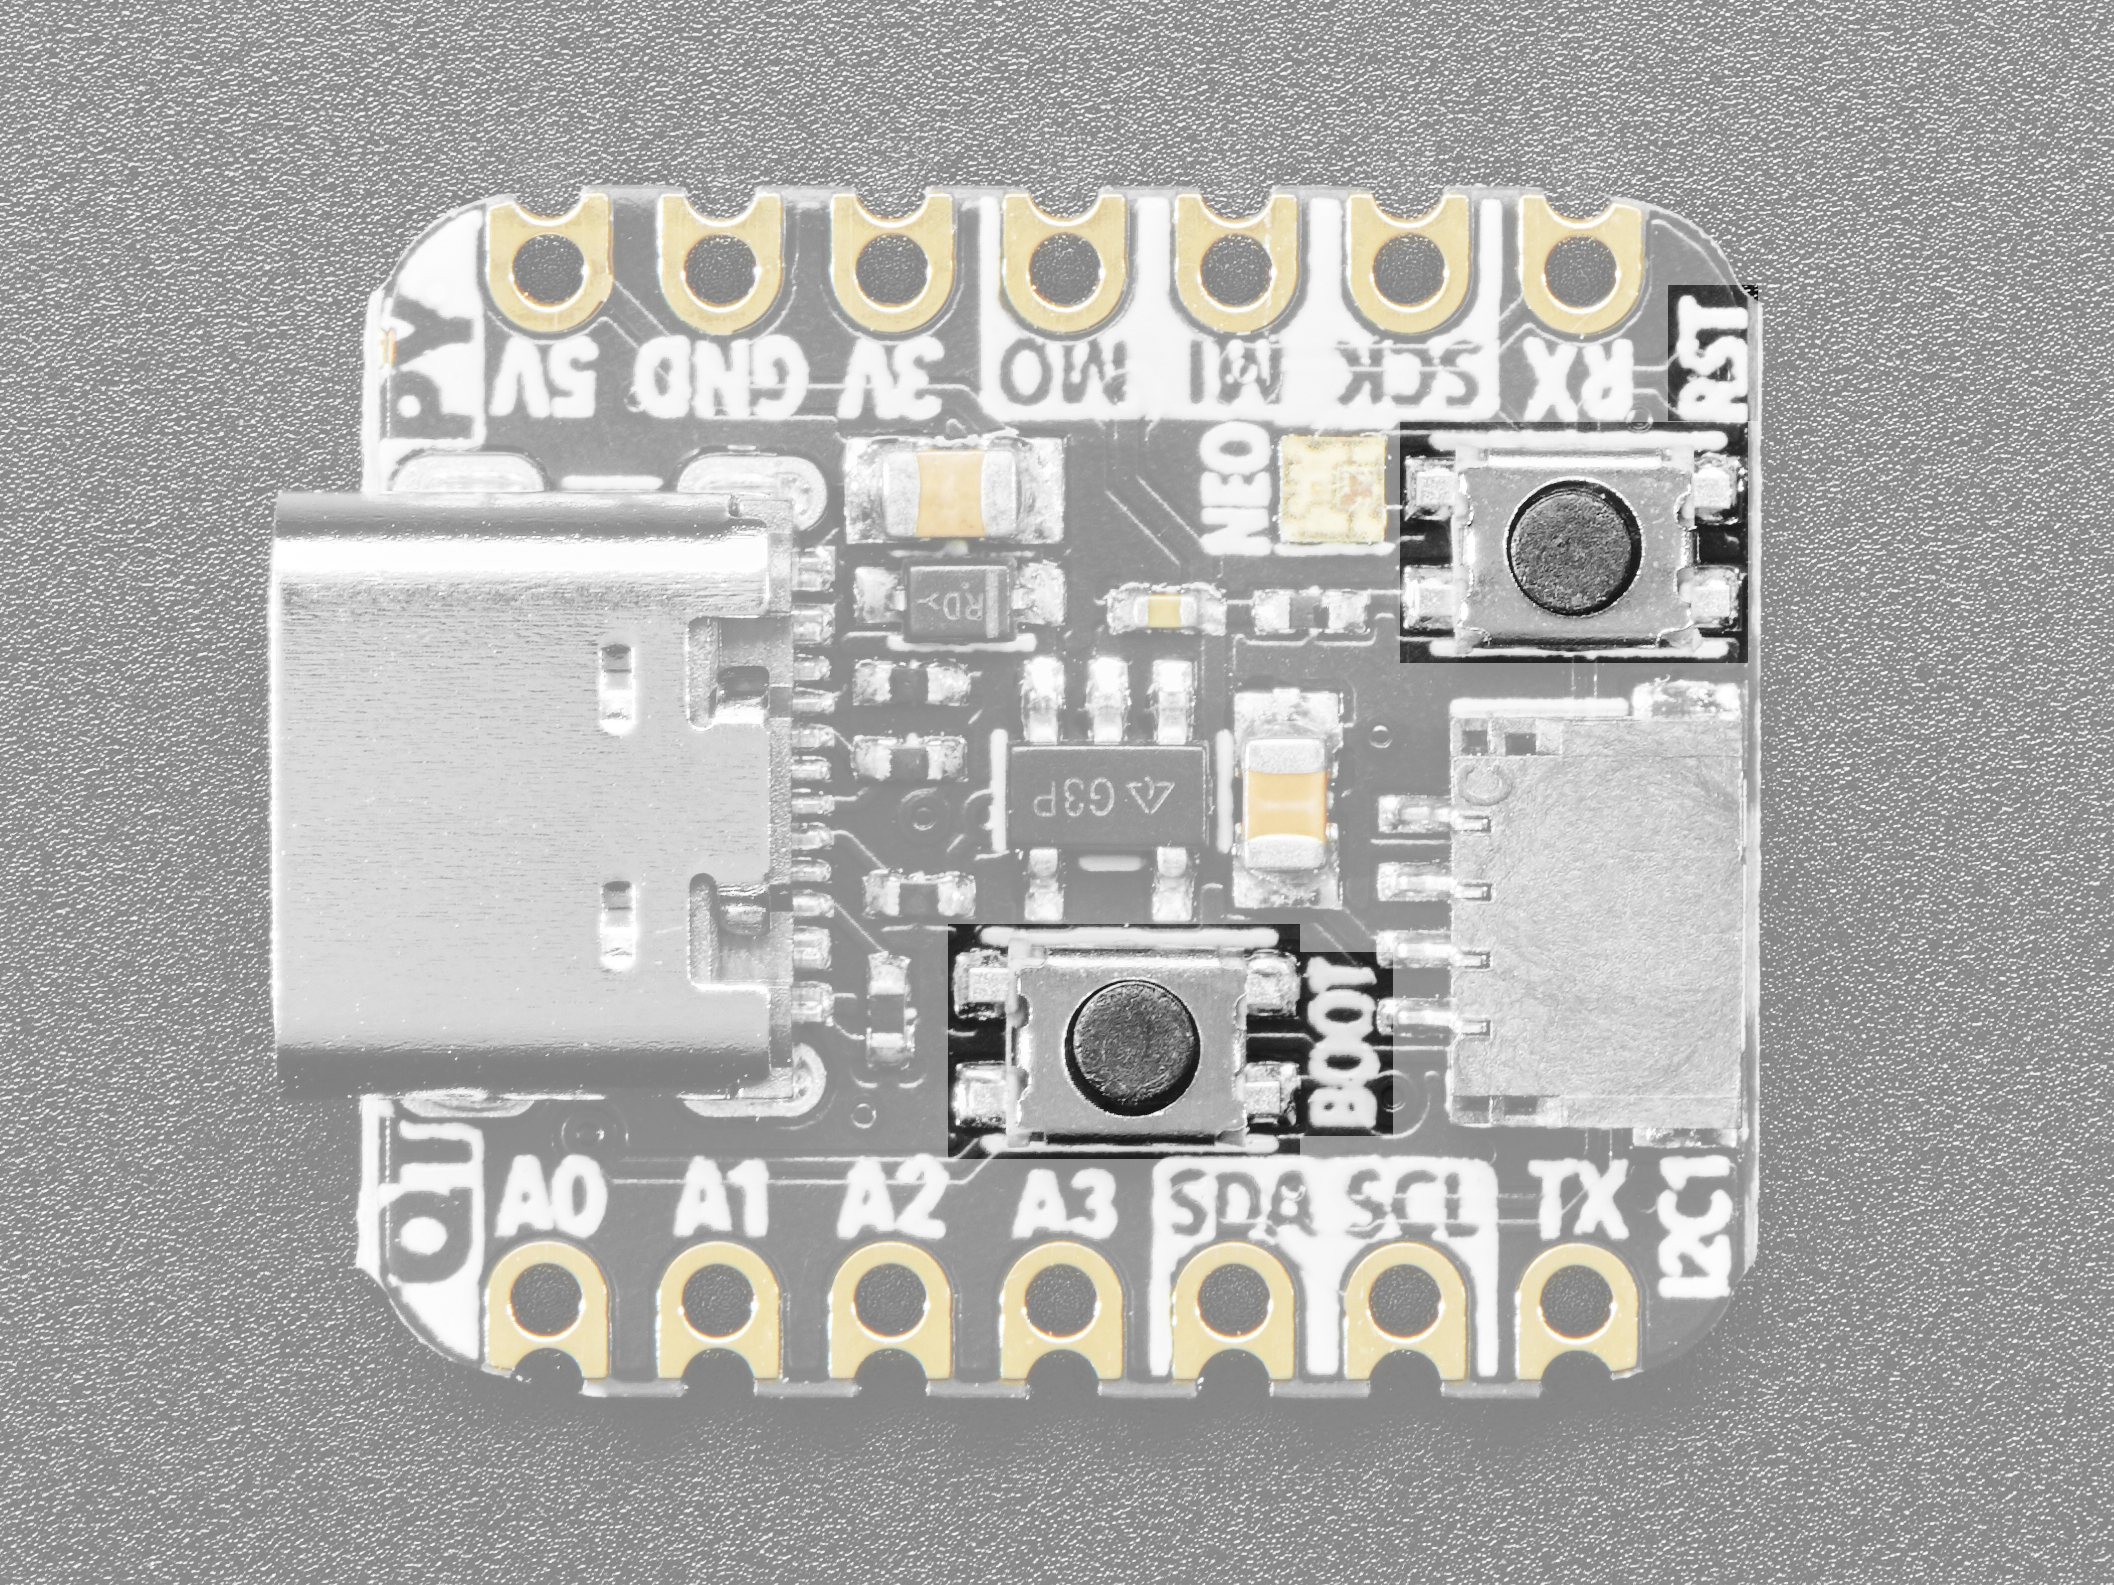 adafruit_products_QTRP_pinouts_buttons.jpg